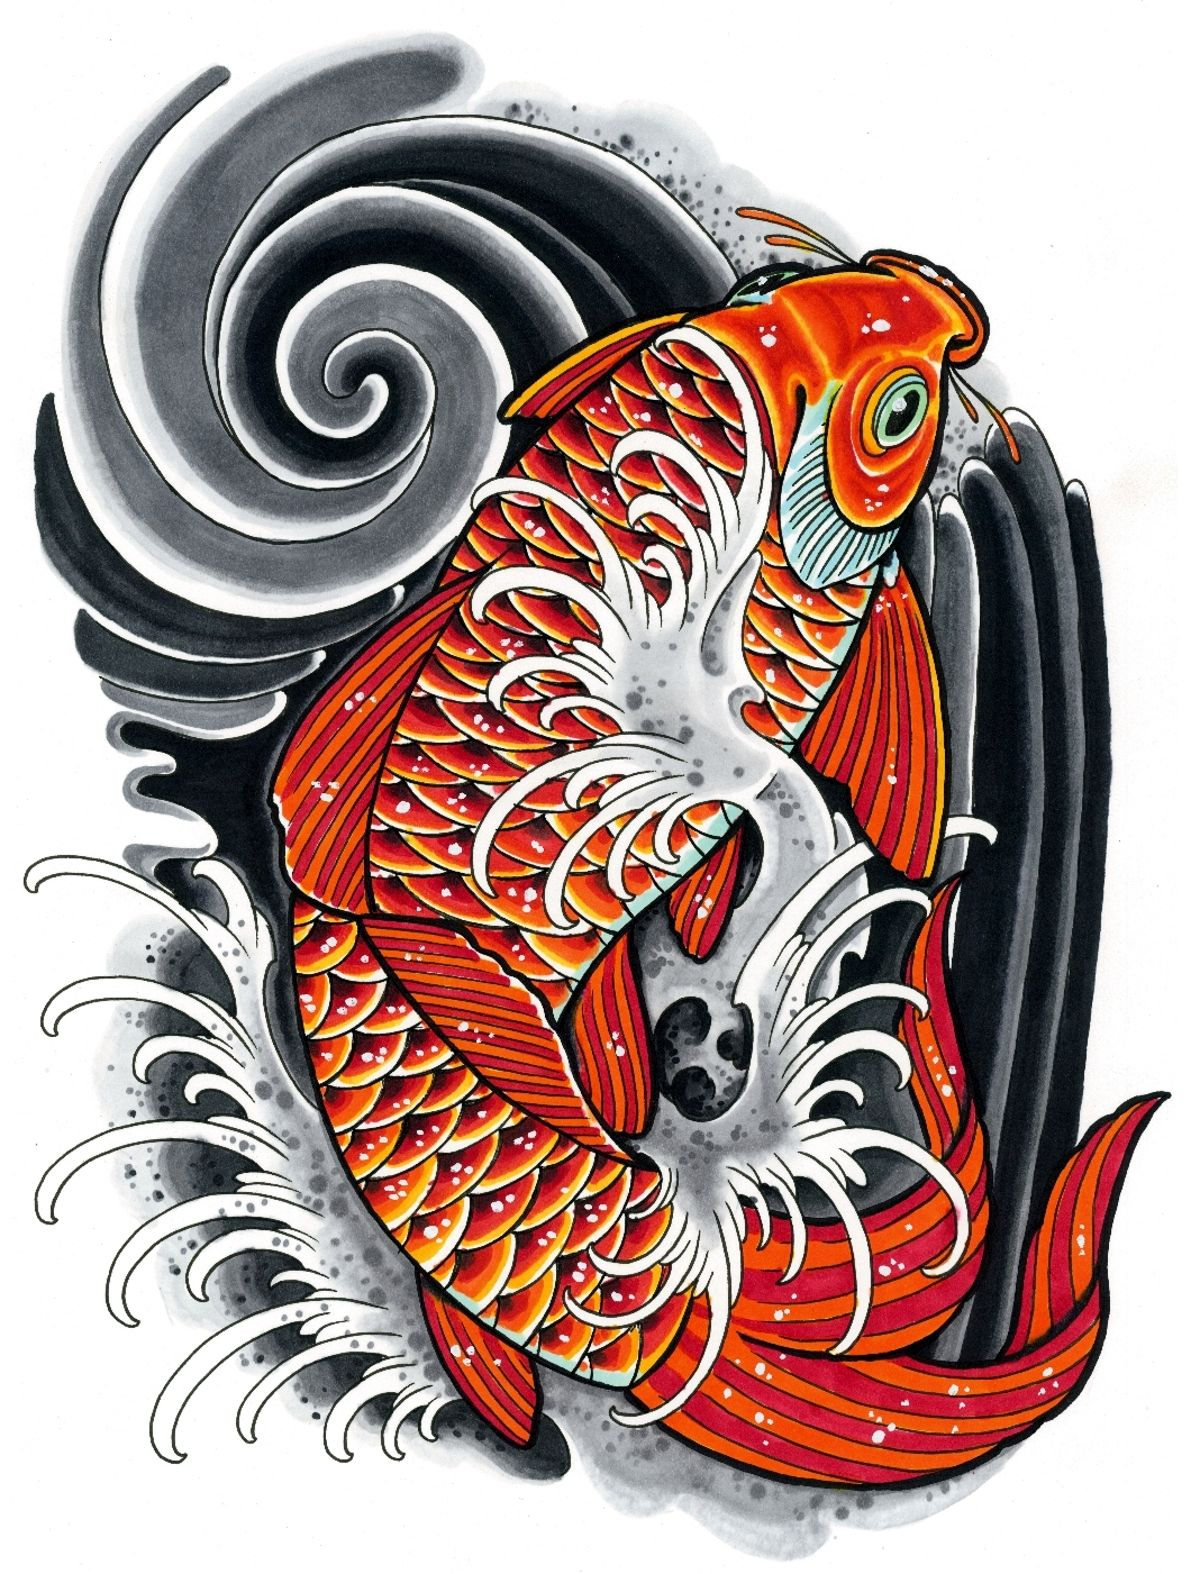 1200x1574 Koi Drawing Inspired By Japanese Tattoo Art. Done With Copic